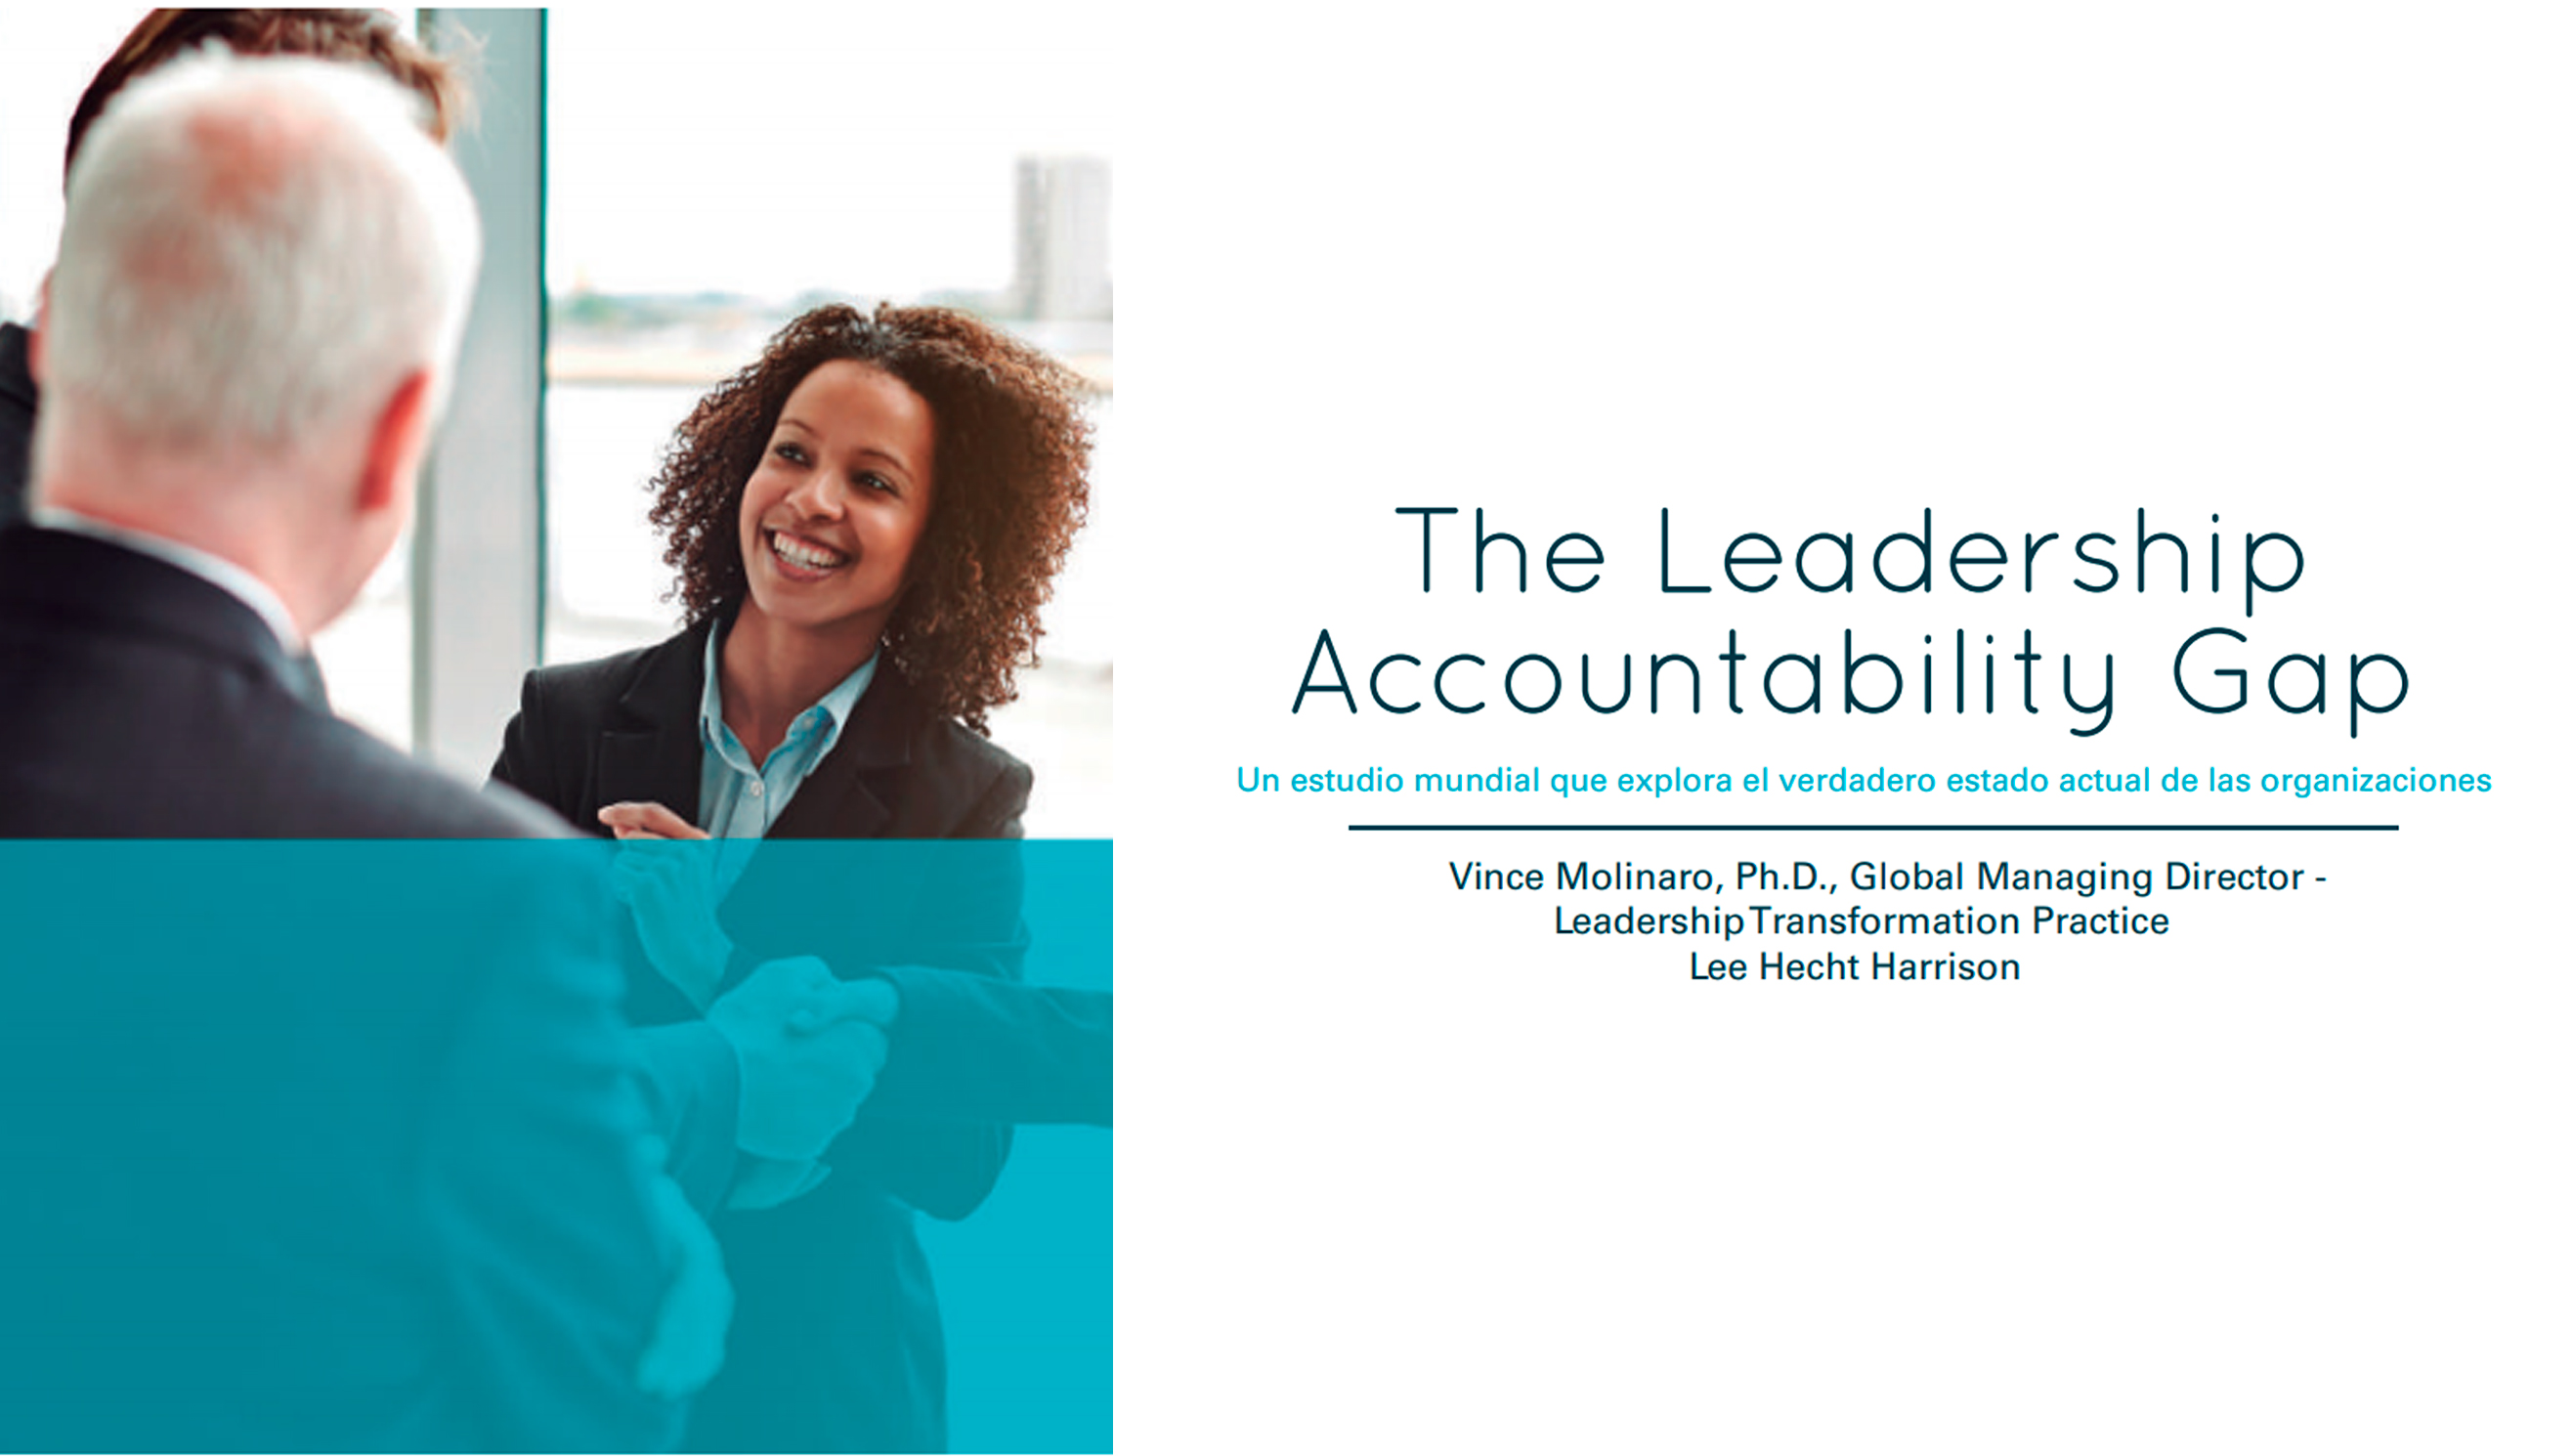 The Leadership Accountability GAP Estudio - The Leadership Accountability Gap